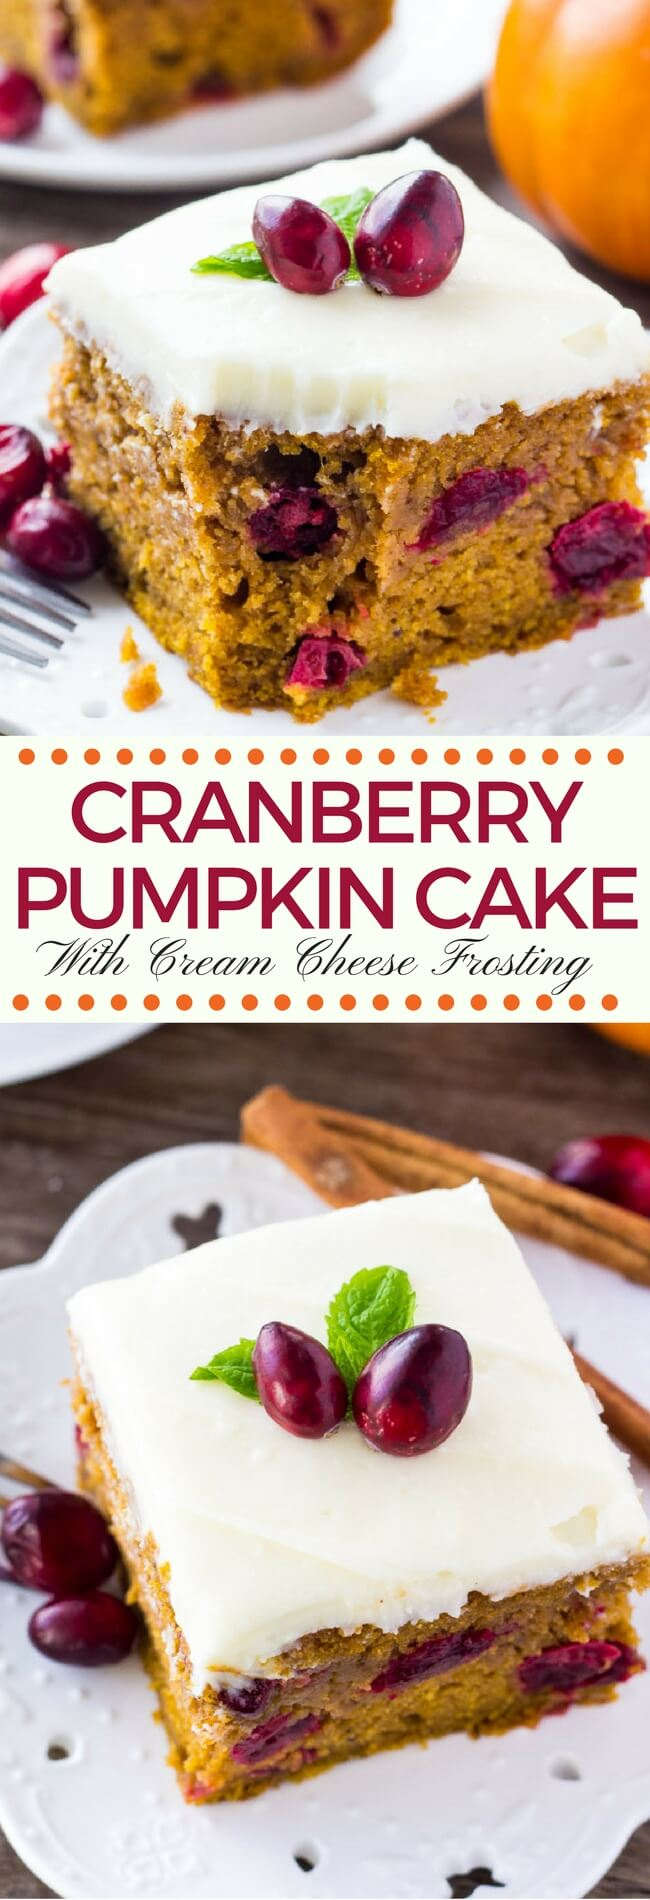 Tart cranberries, deliciously moist pumpkin spice cake & tangy cream cheese frosting. This cranberry pumpkin cake with cream cheese frosting is perfect for Thanksgiving or Christmas.#christmasbaking #pumpkin #cranberry #pumpkincranberry